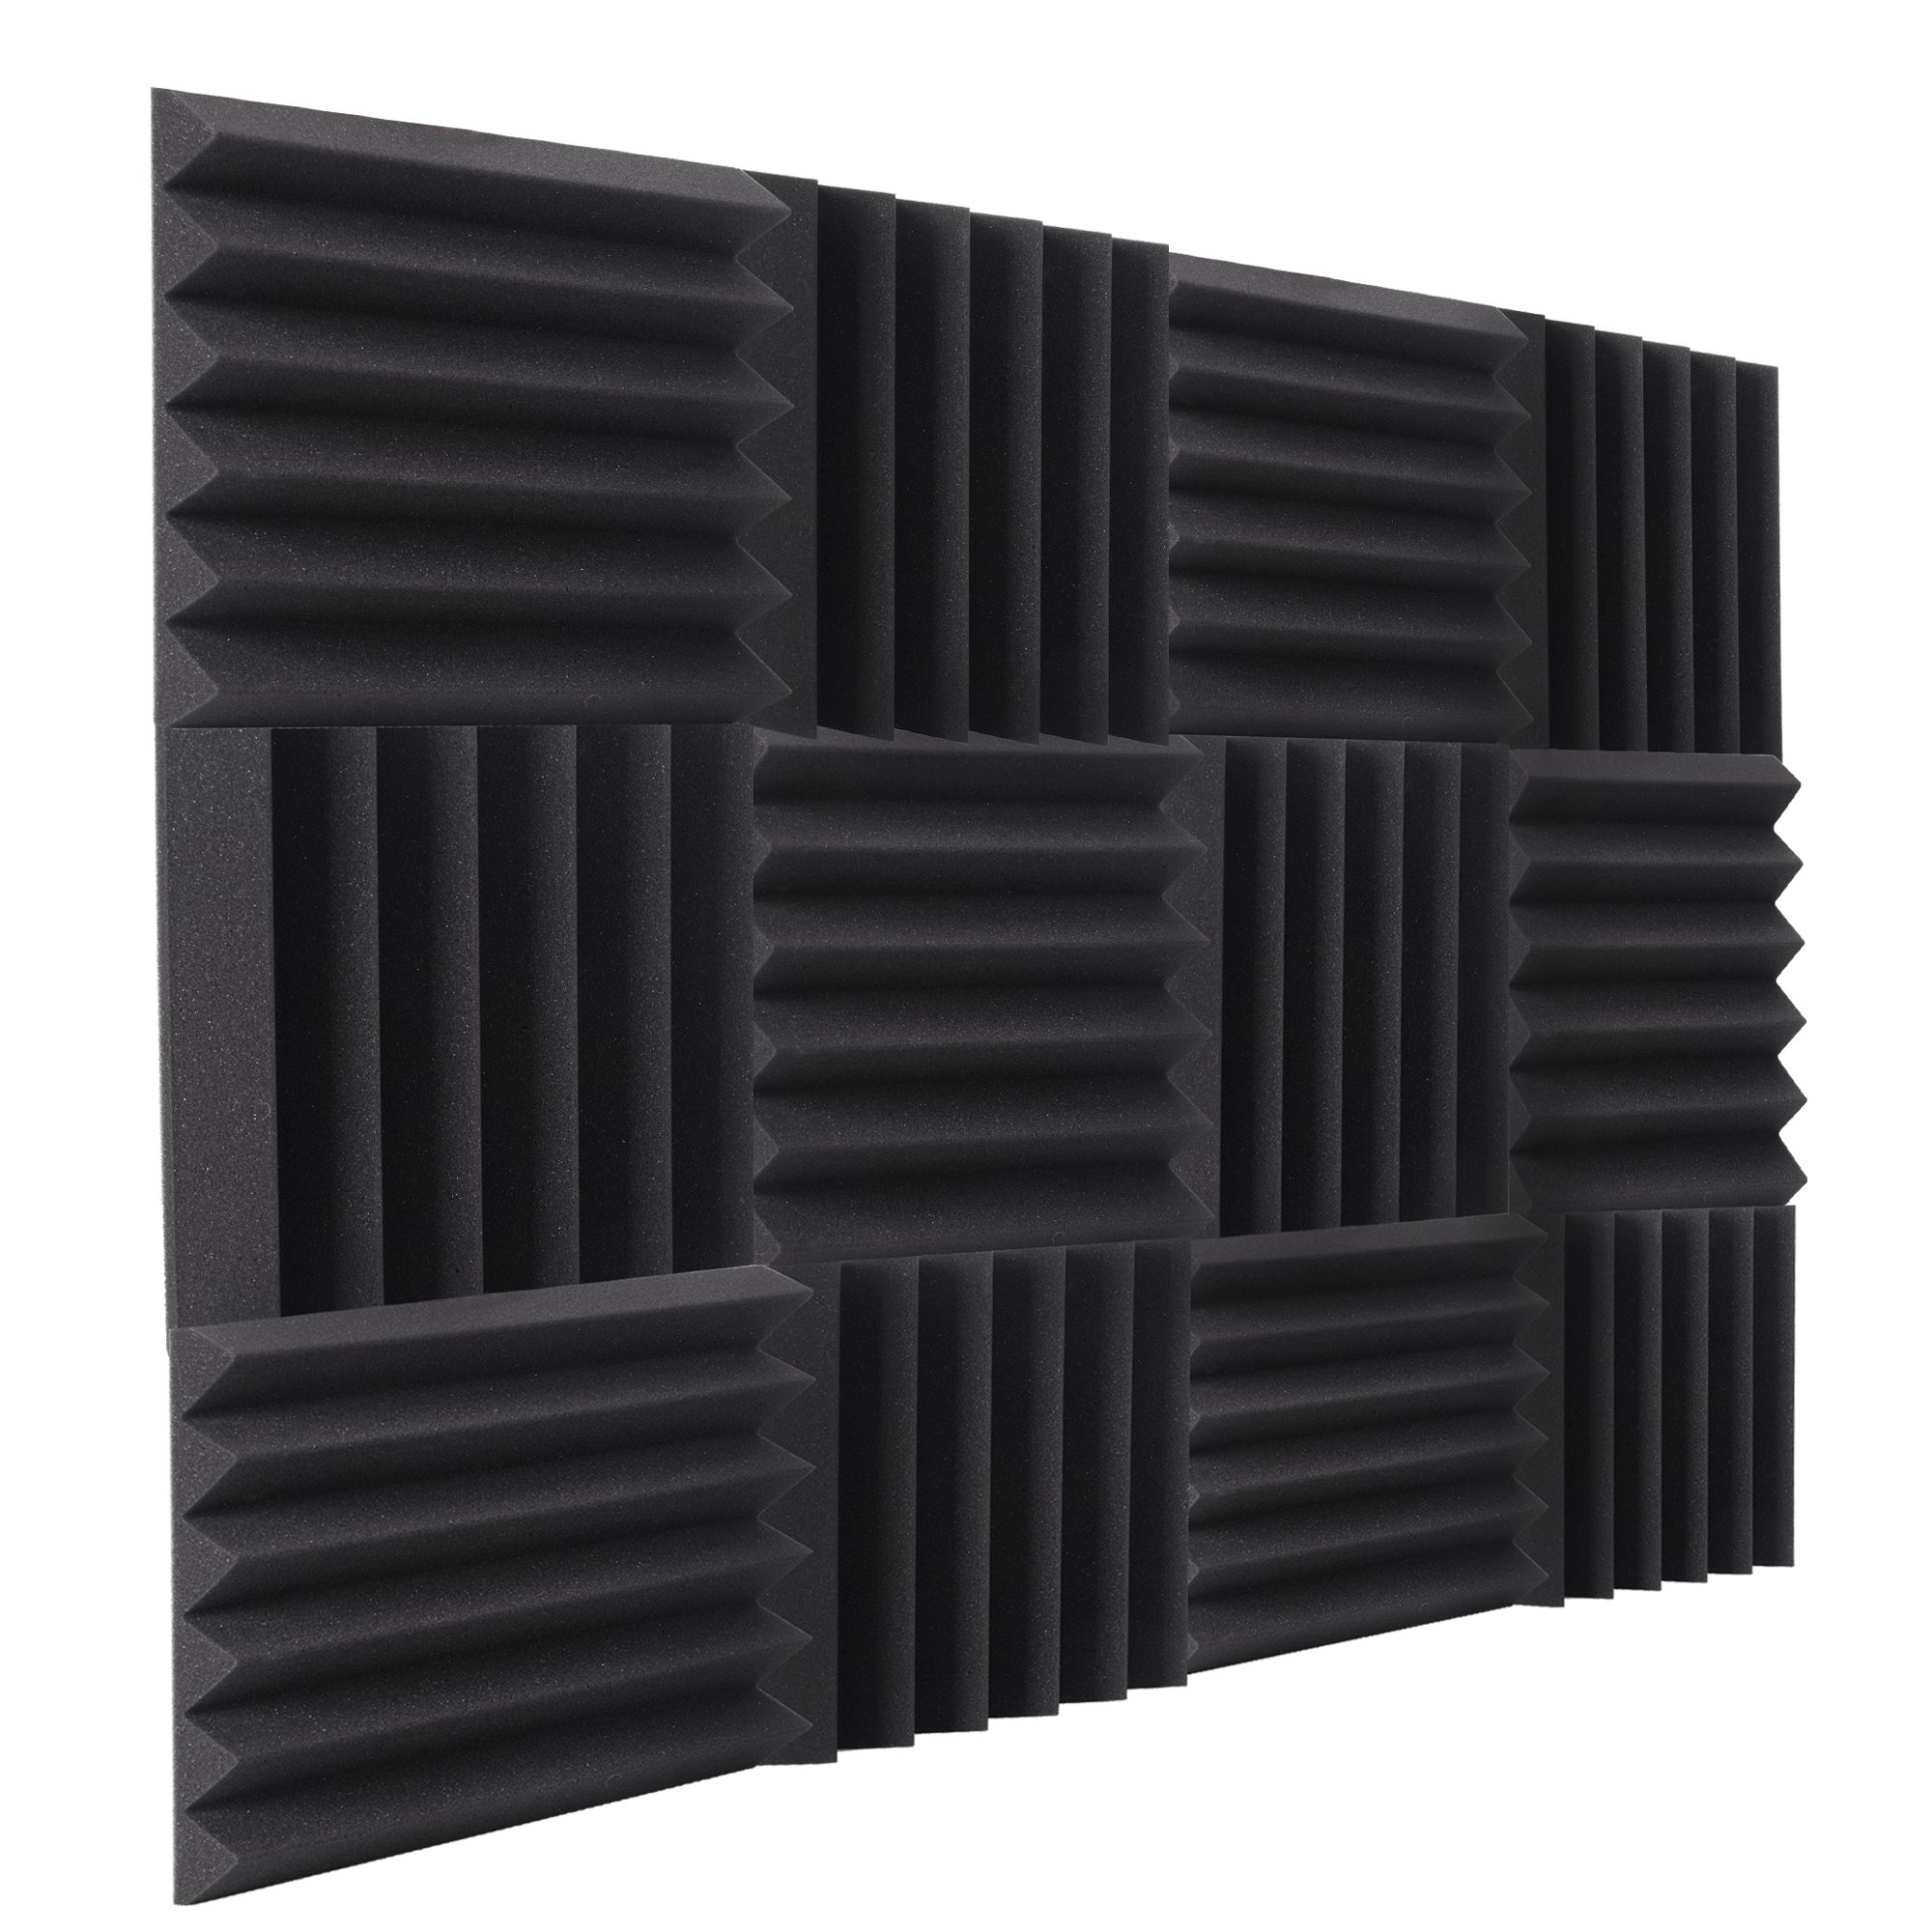 """Double Thick Studio Acoustic Wedge Foam Panels 12 Pack of 12""""x12""""x2"""" (Charcoal) by NRG Acoustic to Remove Noise, Enhance Sound. Wall Foam Panels, Sound Proof Padding for Studios Vloggers, and More."""